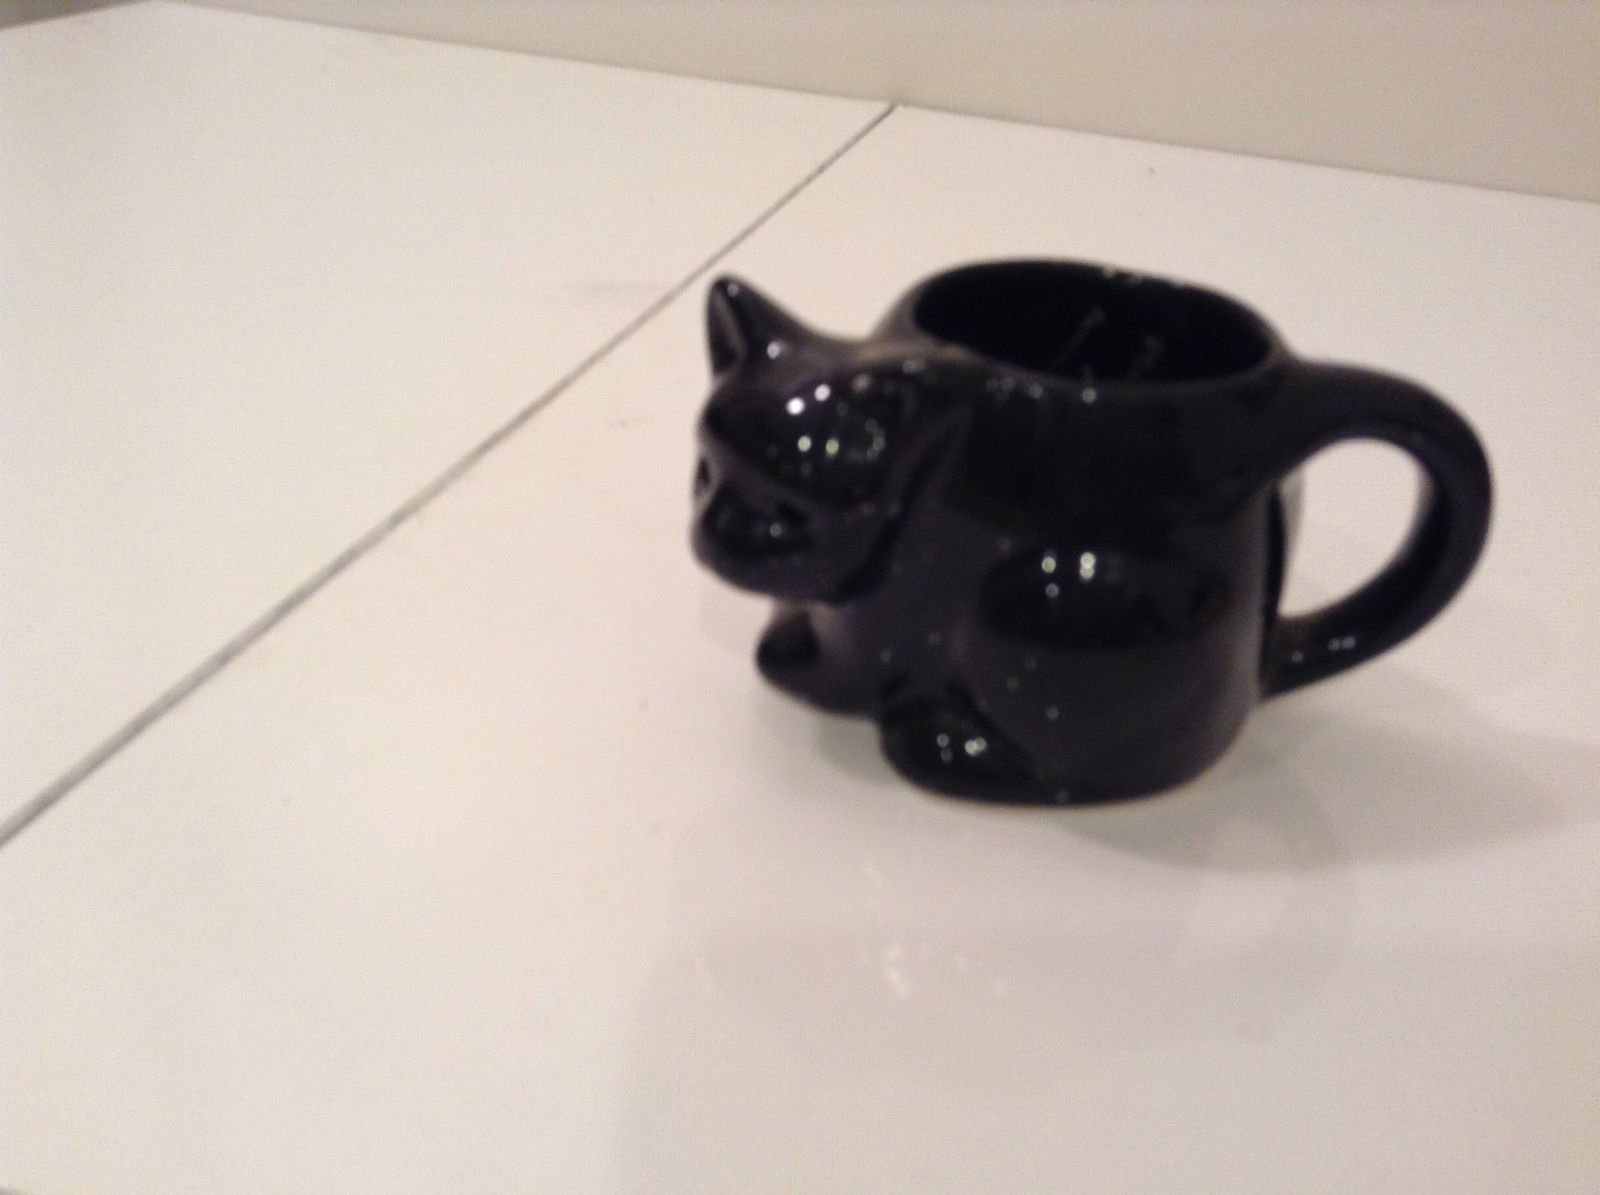 Black Cat Candle Holder Four and a Half Inches Candle Opening Two Inches Tall